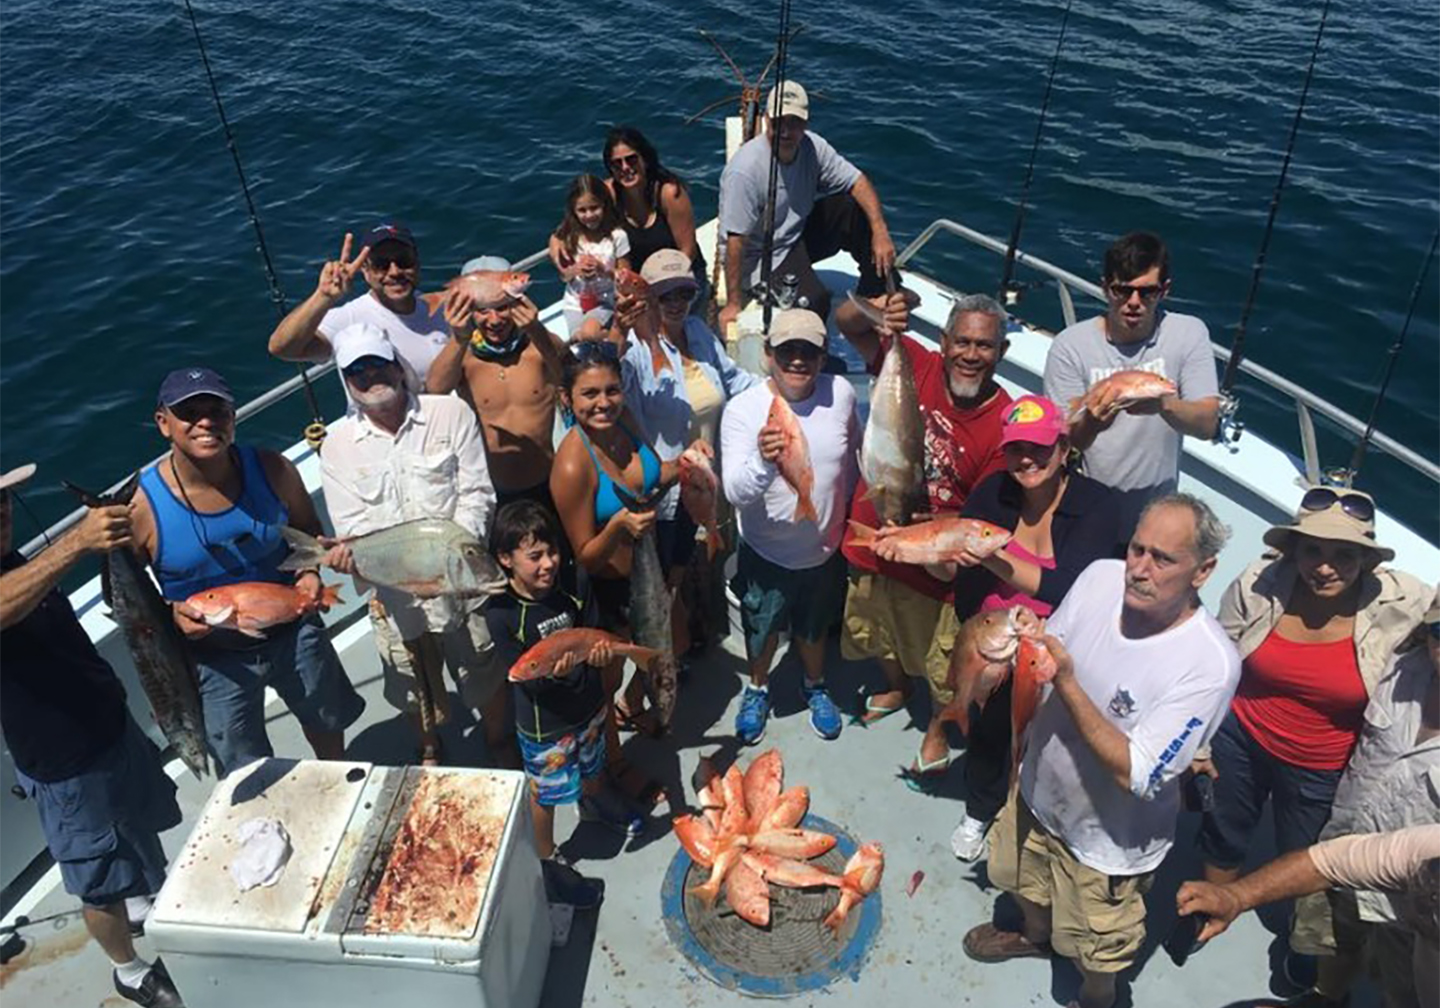 A large group of people with Red Snapper aboard a shared charter.